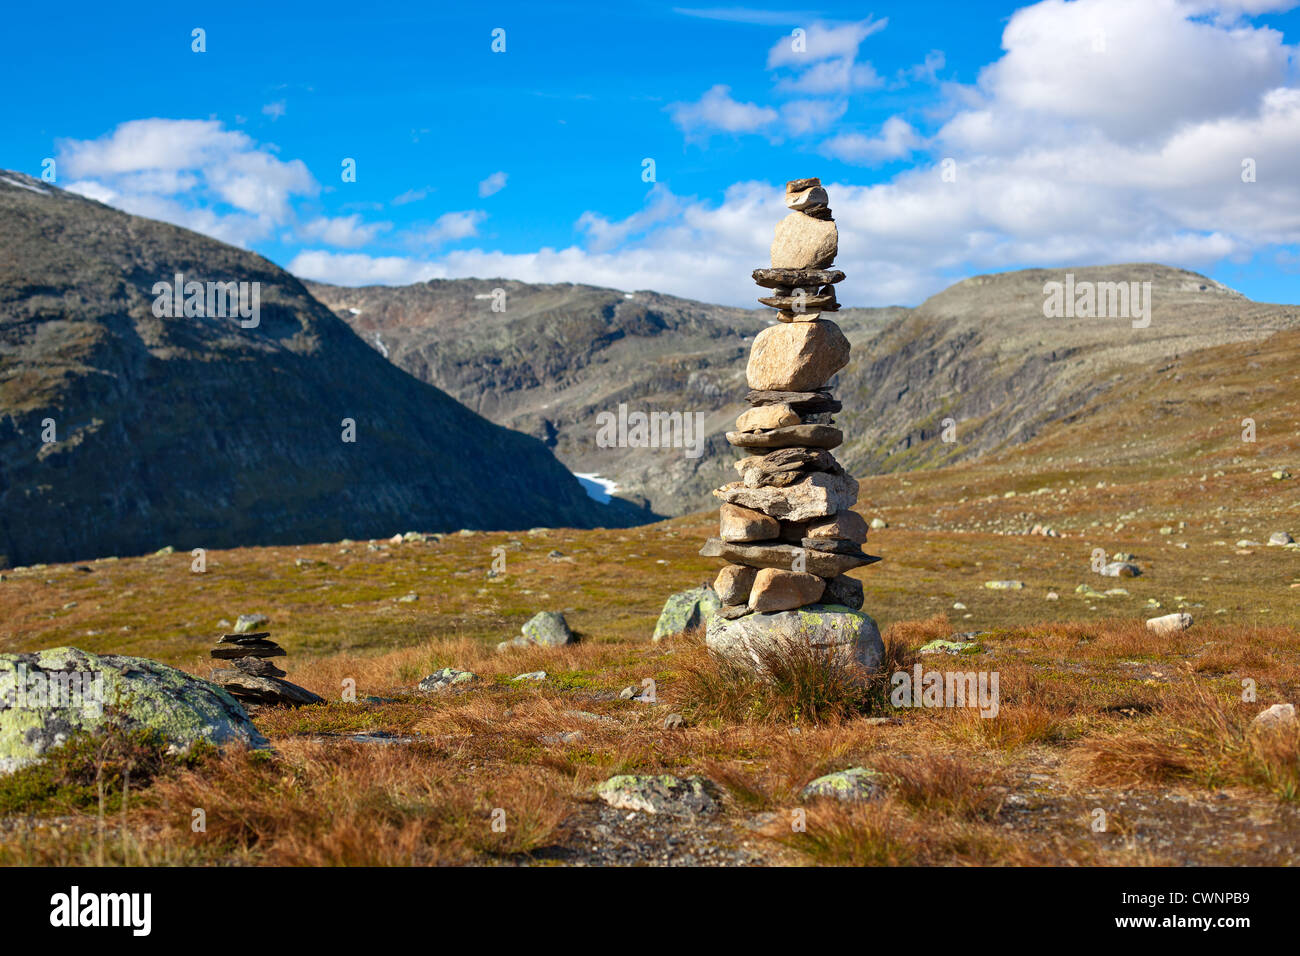 Big hand-made stone tower in Norway. - Stock Image